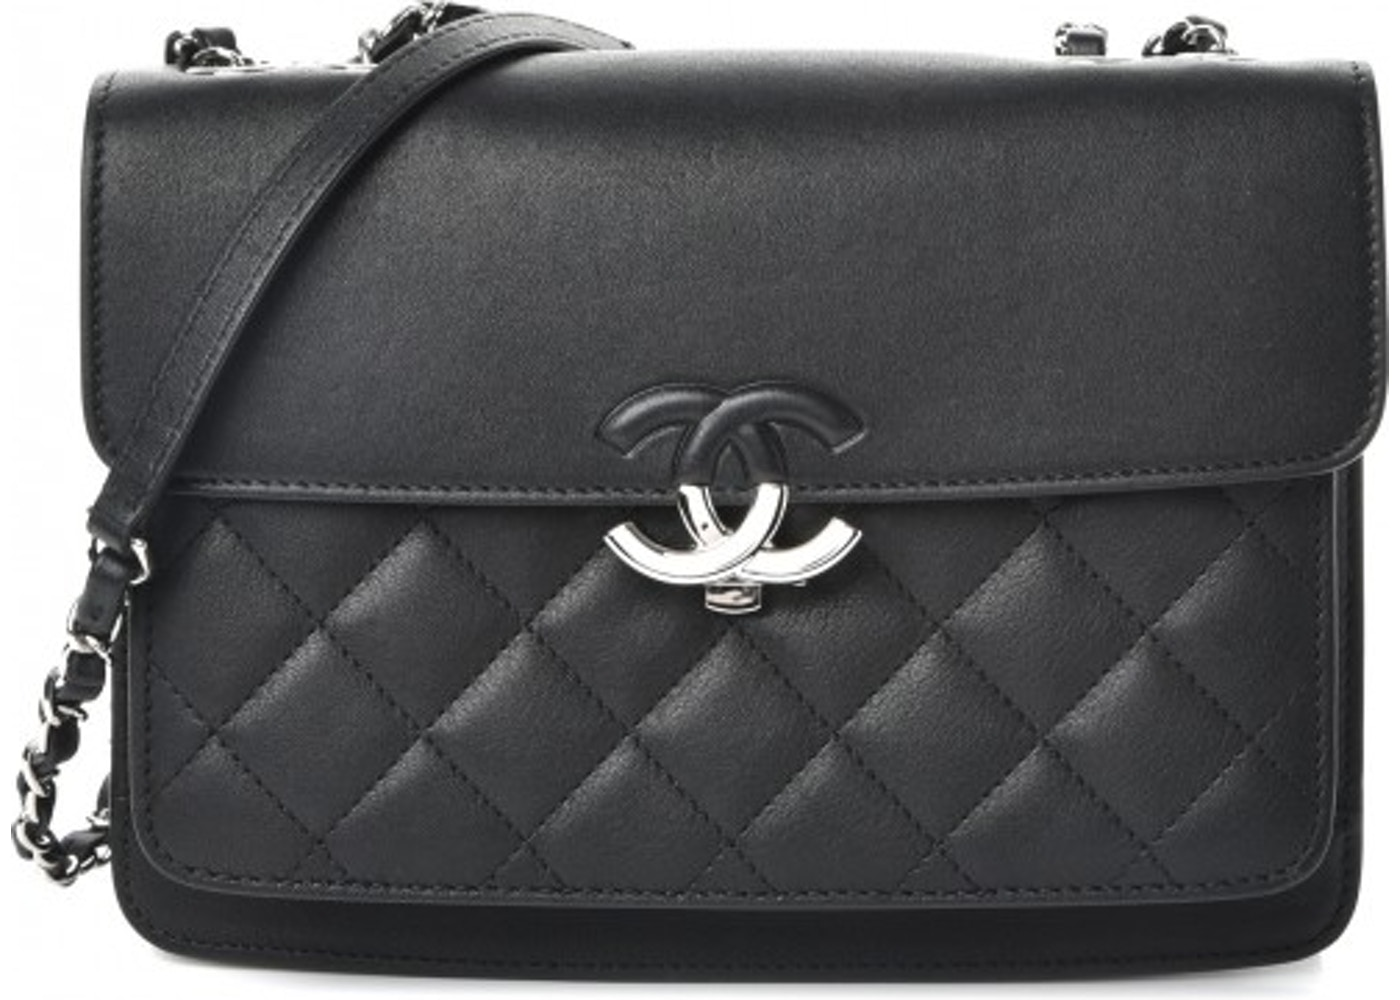 01ea652dffc2 Chanel Urban Companion Flap Quilted Diamond Mini Black. Quilted Diamond  Mini Black